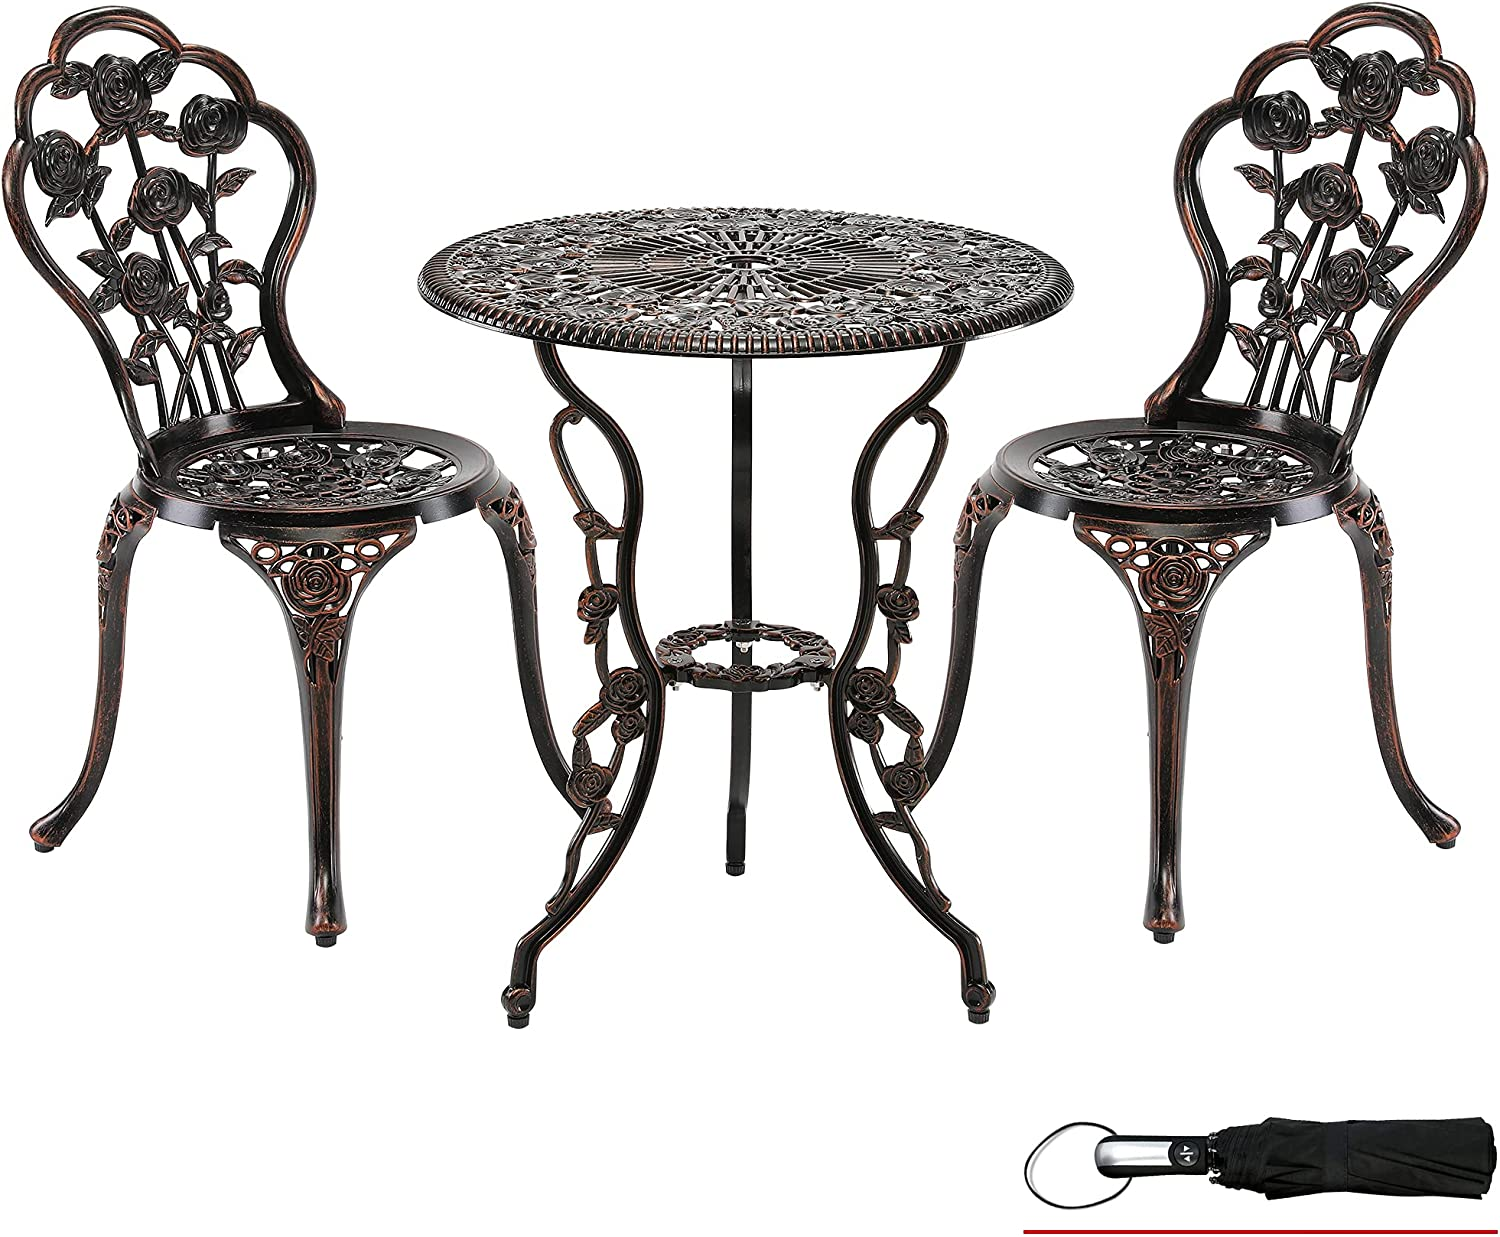 LZRS 3-Piece Outdoor Patio Bistro Set Table and Chairs Furniture w/Rose Design for Garden, Porch, Backyard, Cast Aluminum with Umbrella Hole, Durable Rust Weather Resistance, Bronze